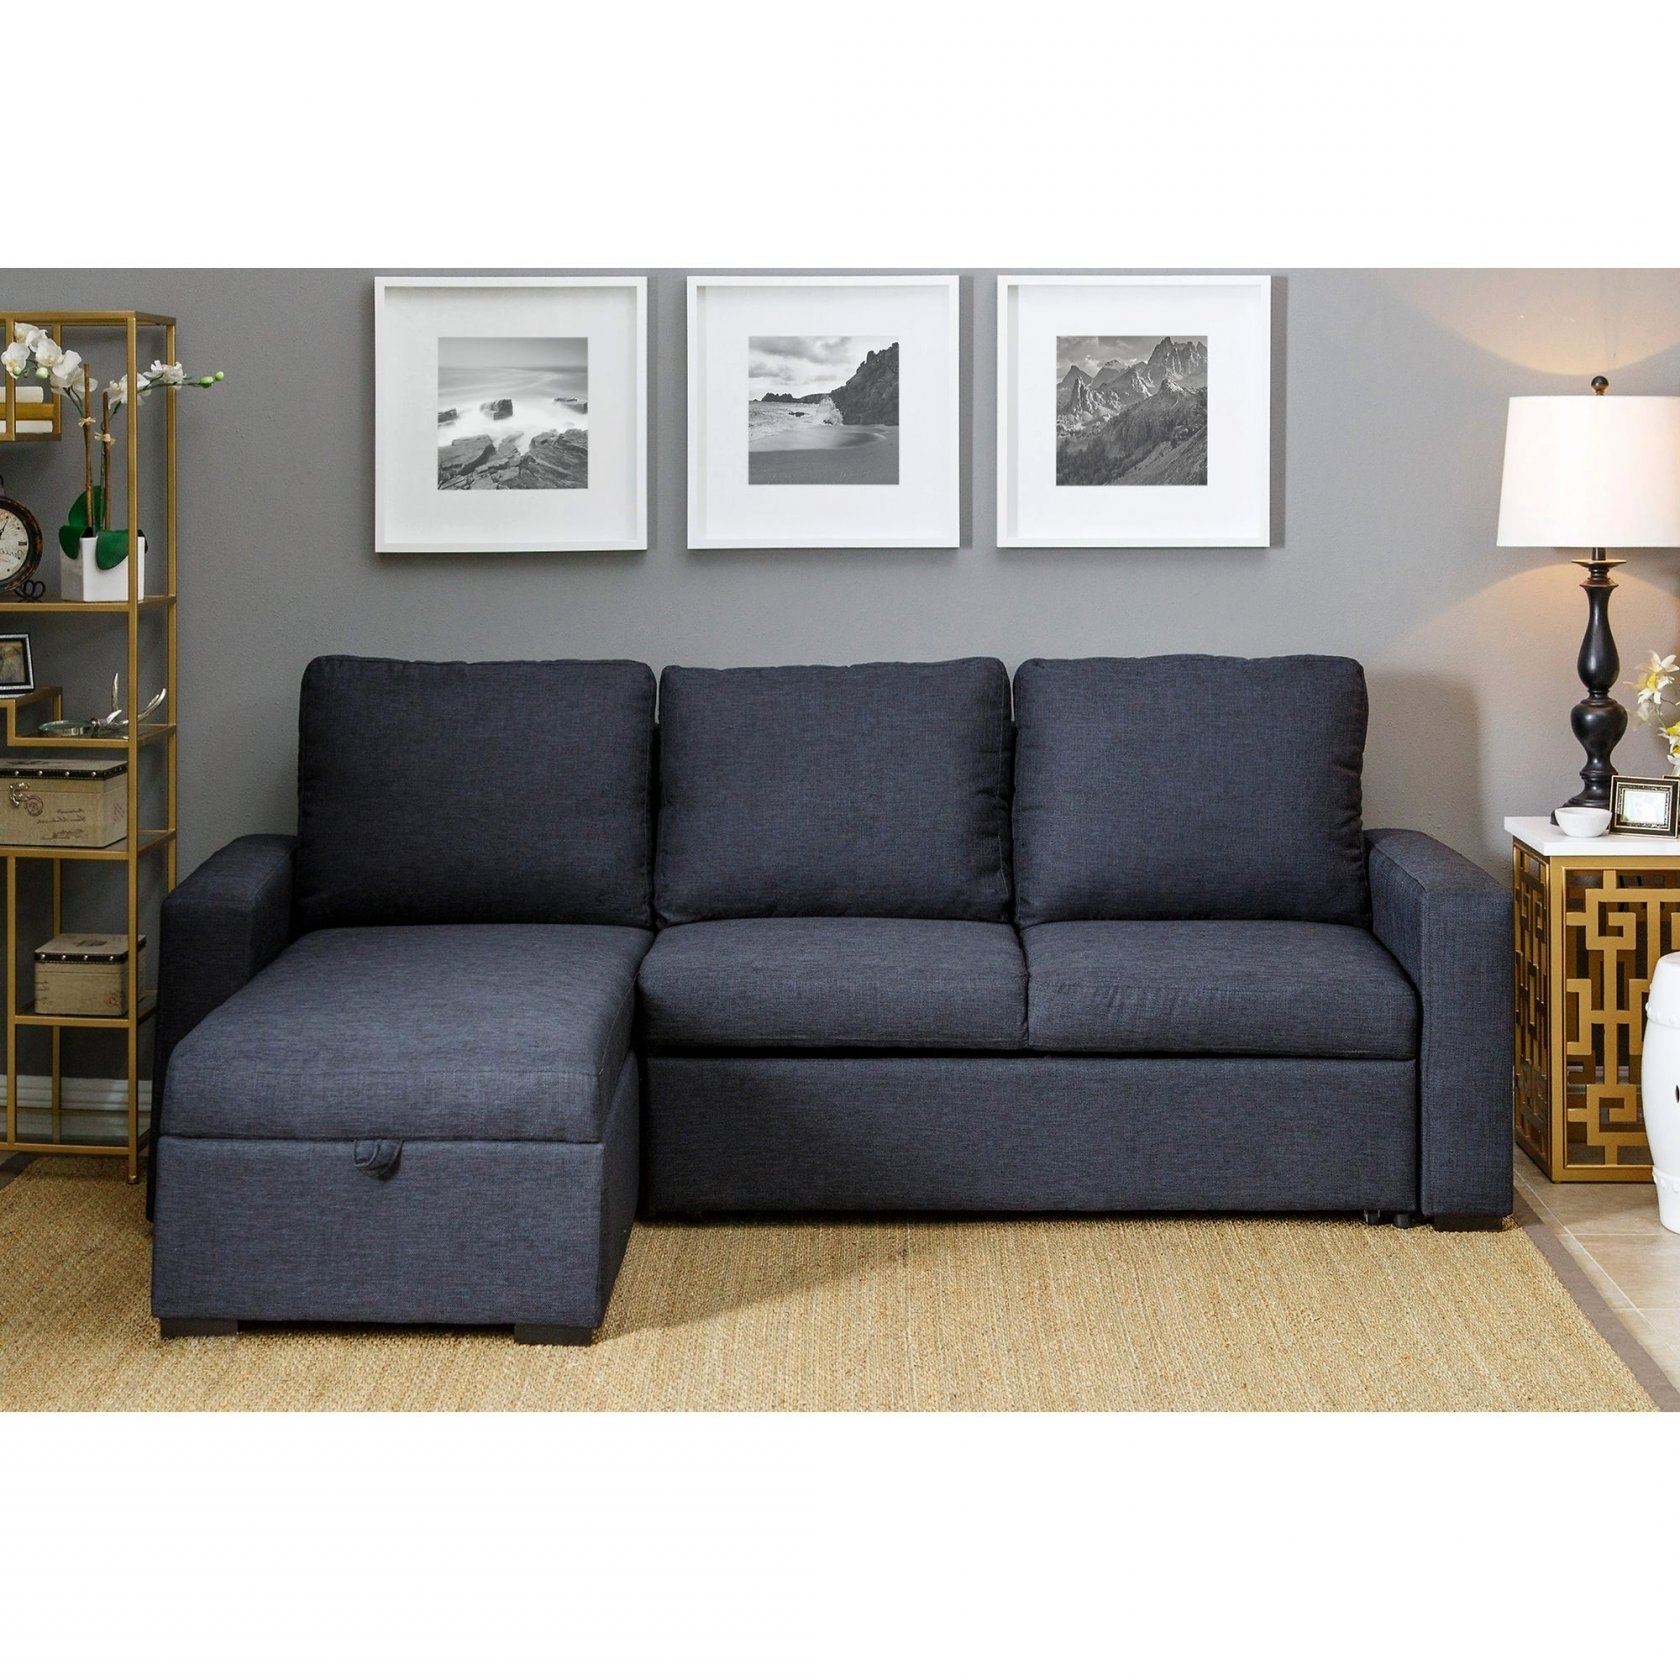 Charlotte Sectional Sofas Within Most Popular Abbyson Living Sectional Sofa #5 Excellent Abbyson Living (View 8 of 20)